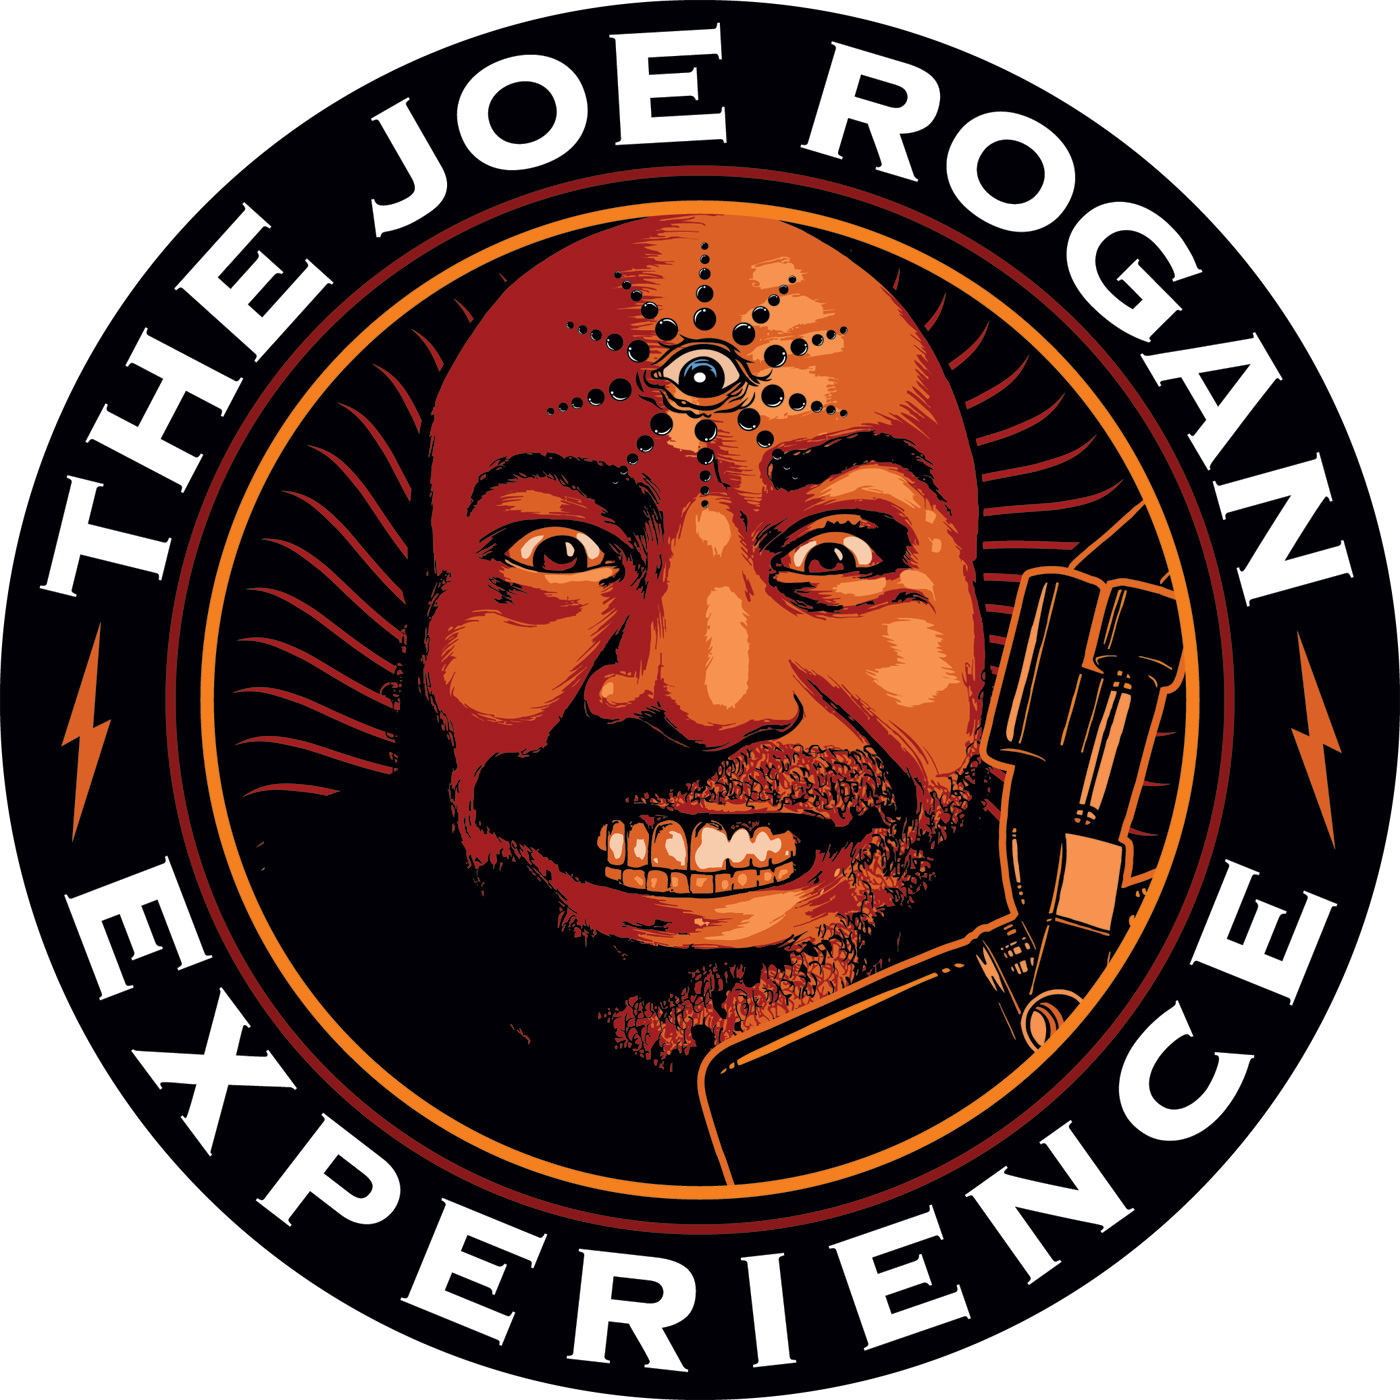 The Joe Rogan Experience PODCAST #73 - Bert Kreischer, Brian Redban